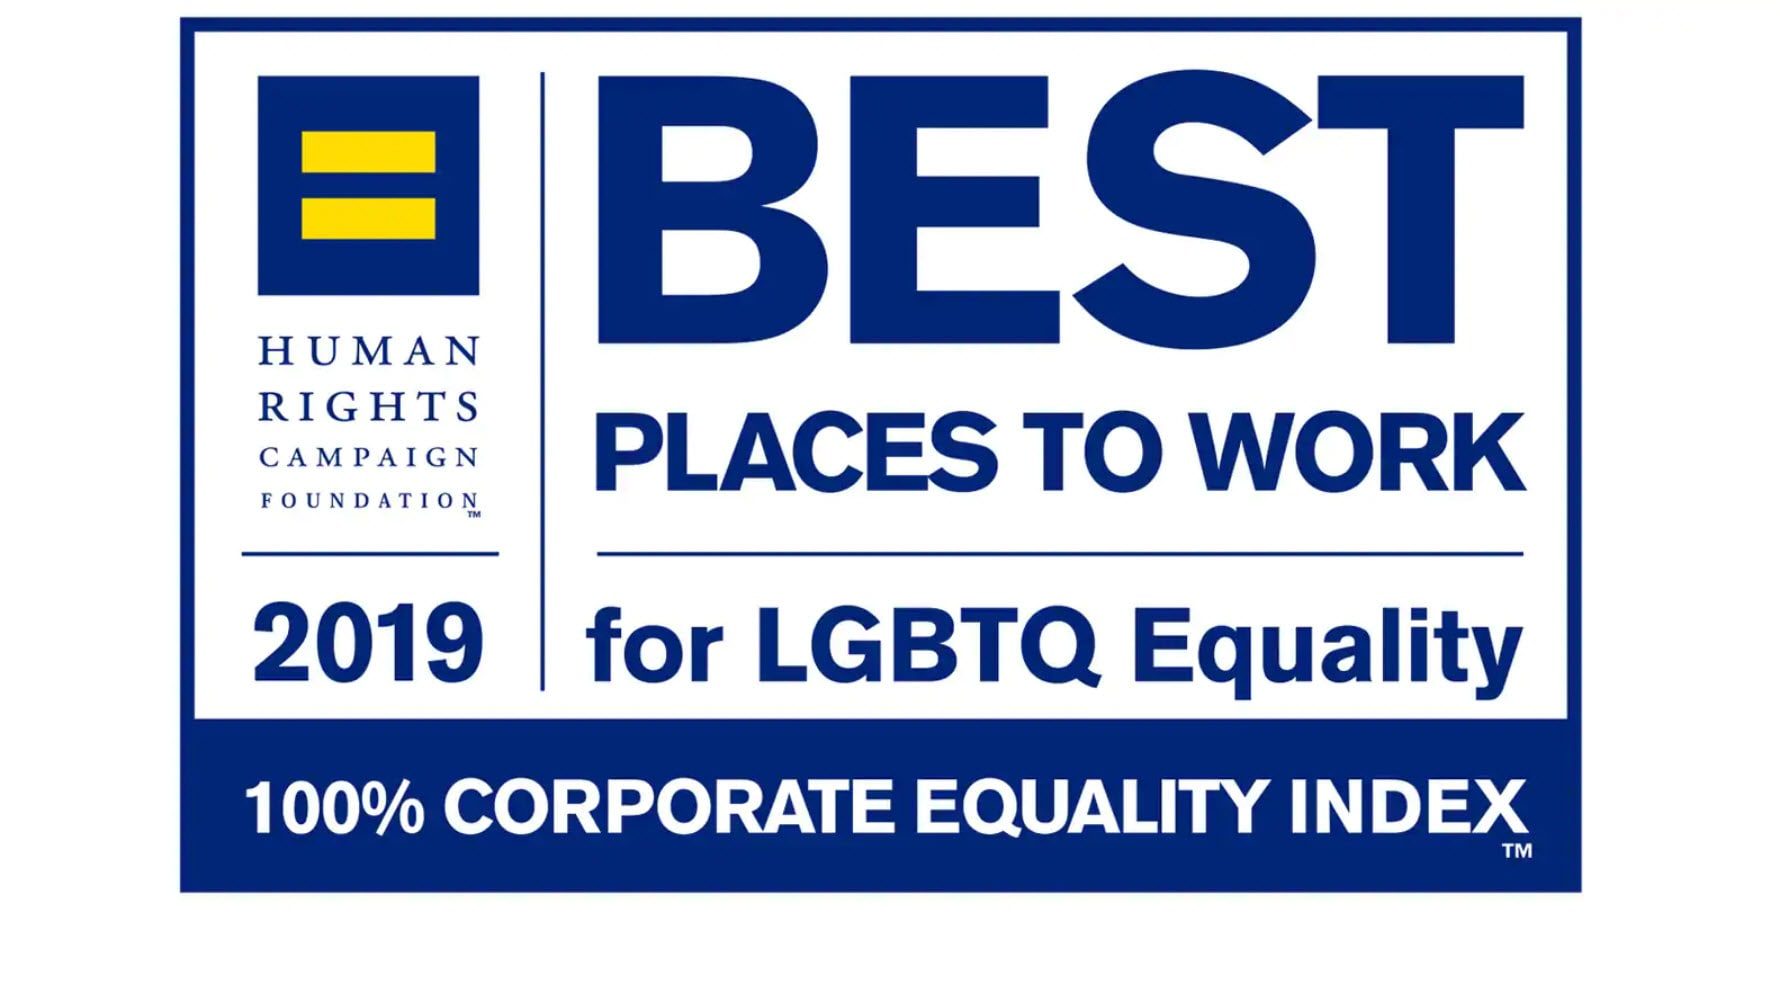 Best places to work for LGBTQ equality award logo